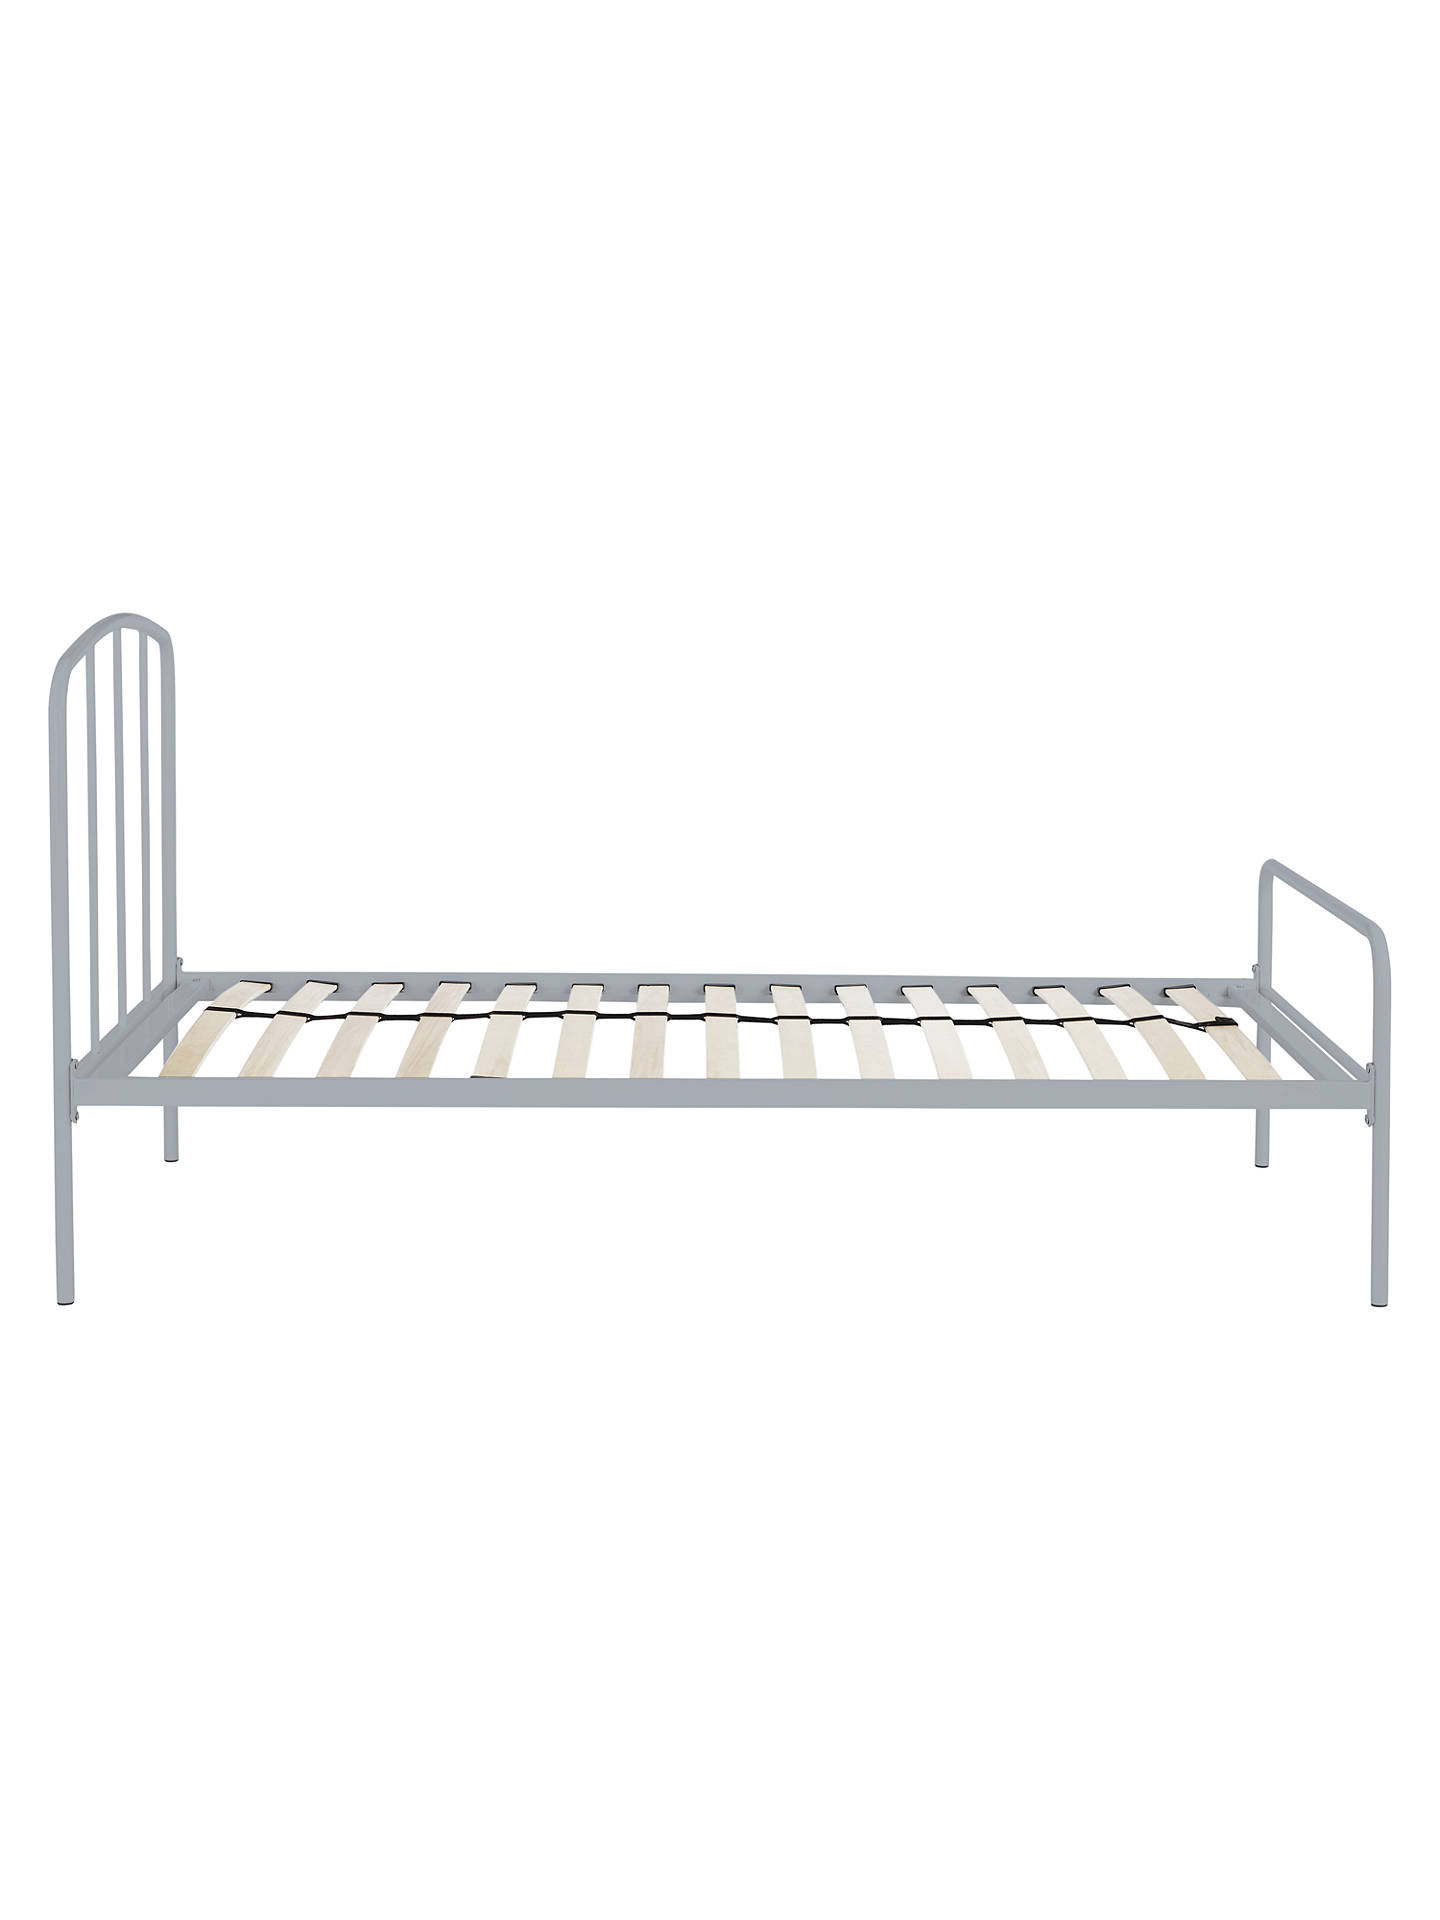 Fantastic Little Home At John Lewis Alpha Metal Bed Frame Single Grey Onthecornerstone Fun Painted Chair Ideas Images Onthecornerstoneorg